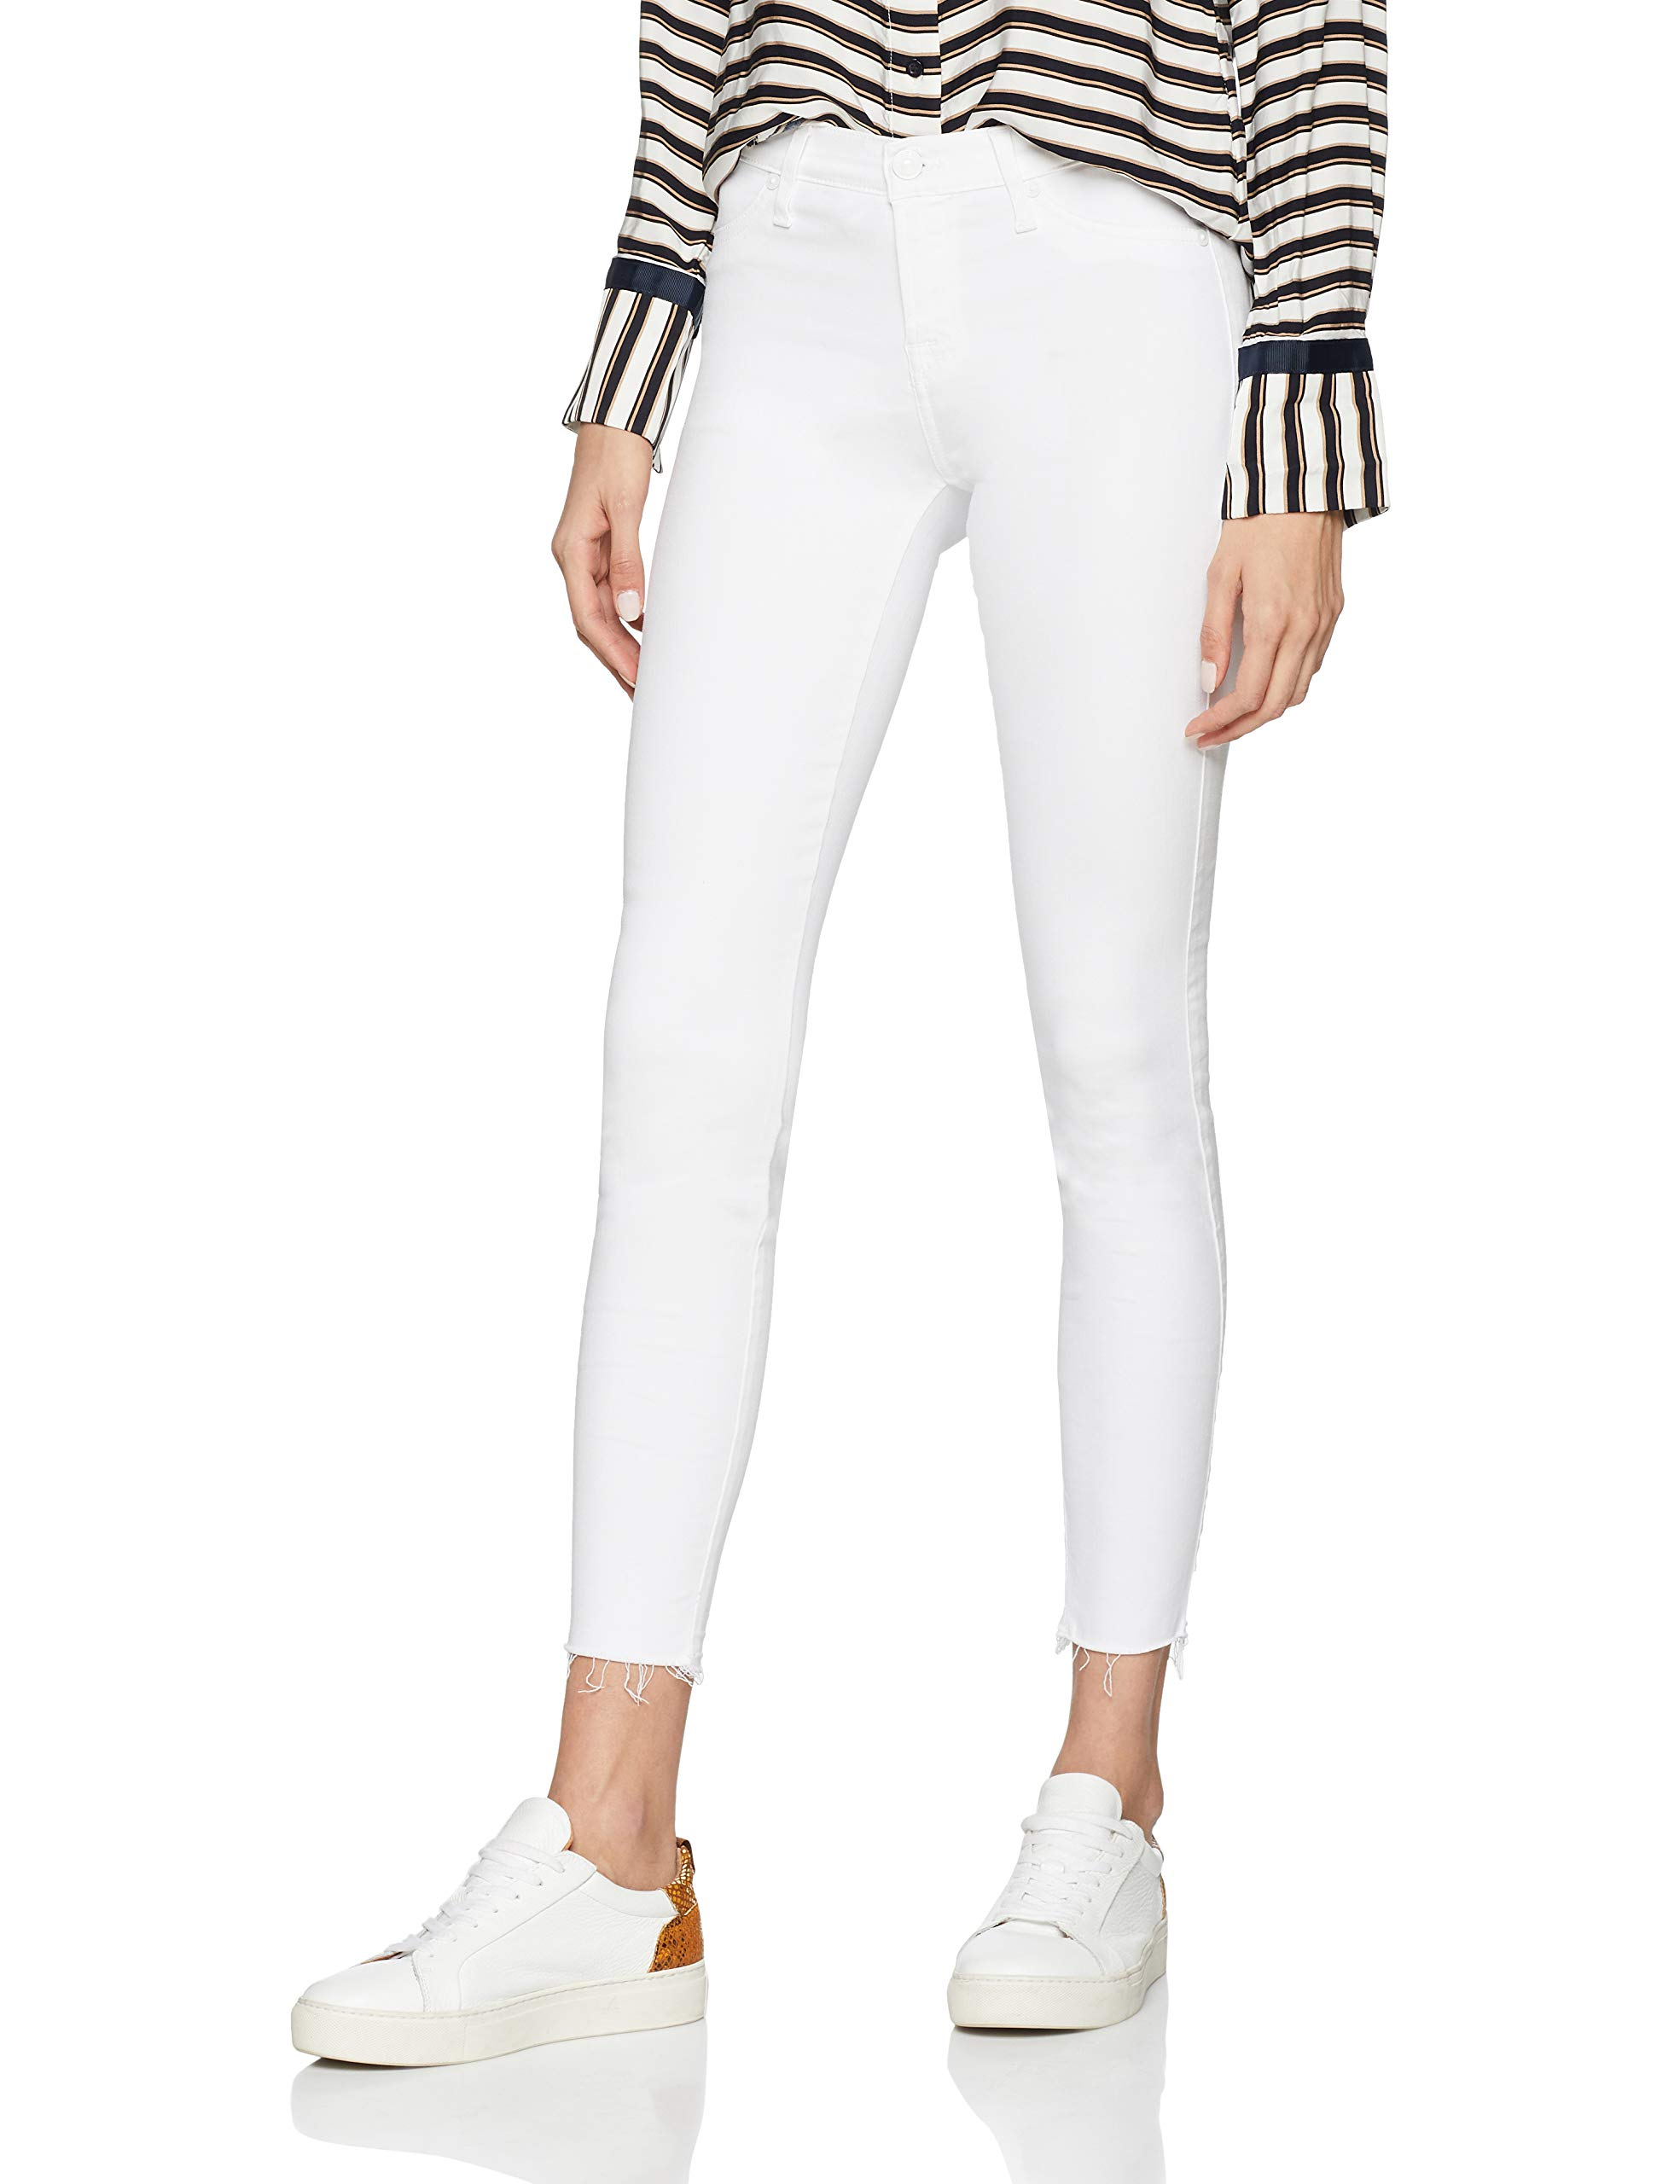 Pure Seven Illusion Skinny Fabricant30 Sagl 0zrtaille For The CropJean Mankind International FemmeBlancslim White All 29DeWHIEY